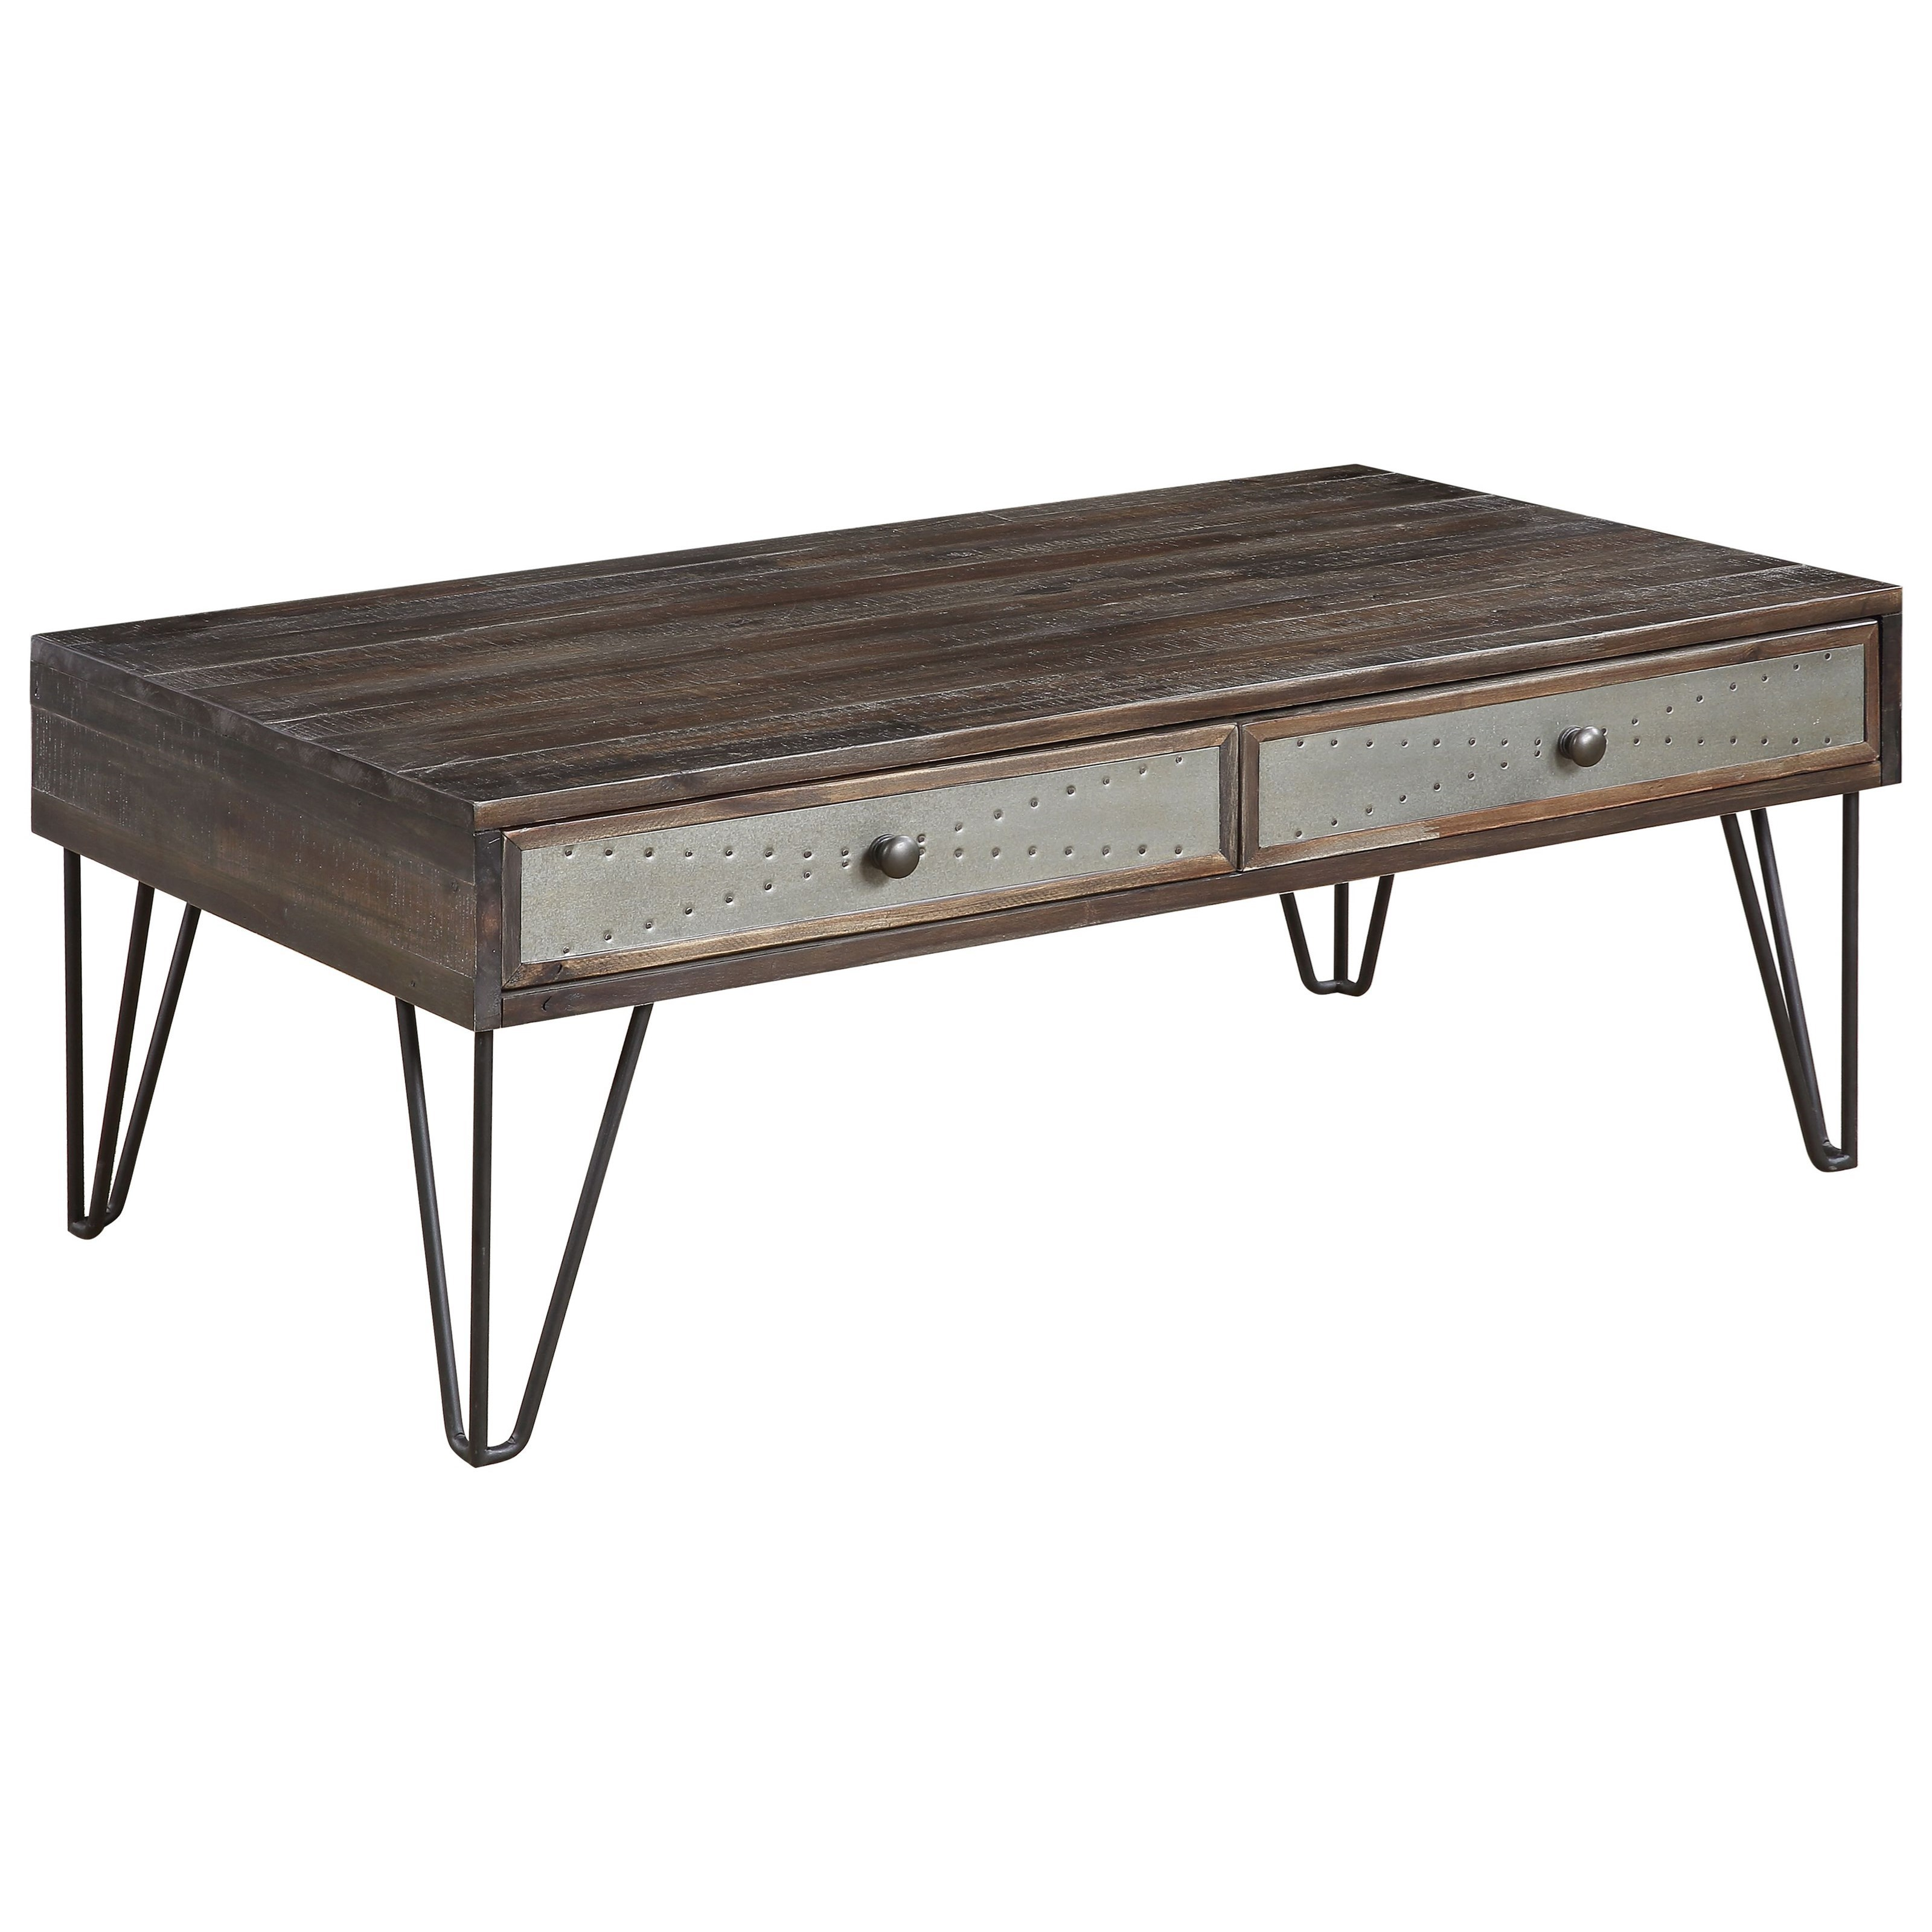 Aspen Court Vintage 2-Drawer Cocktail Table by C2C at Walker's Furniture